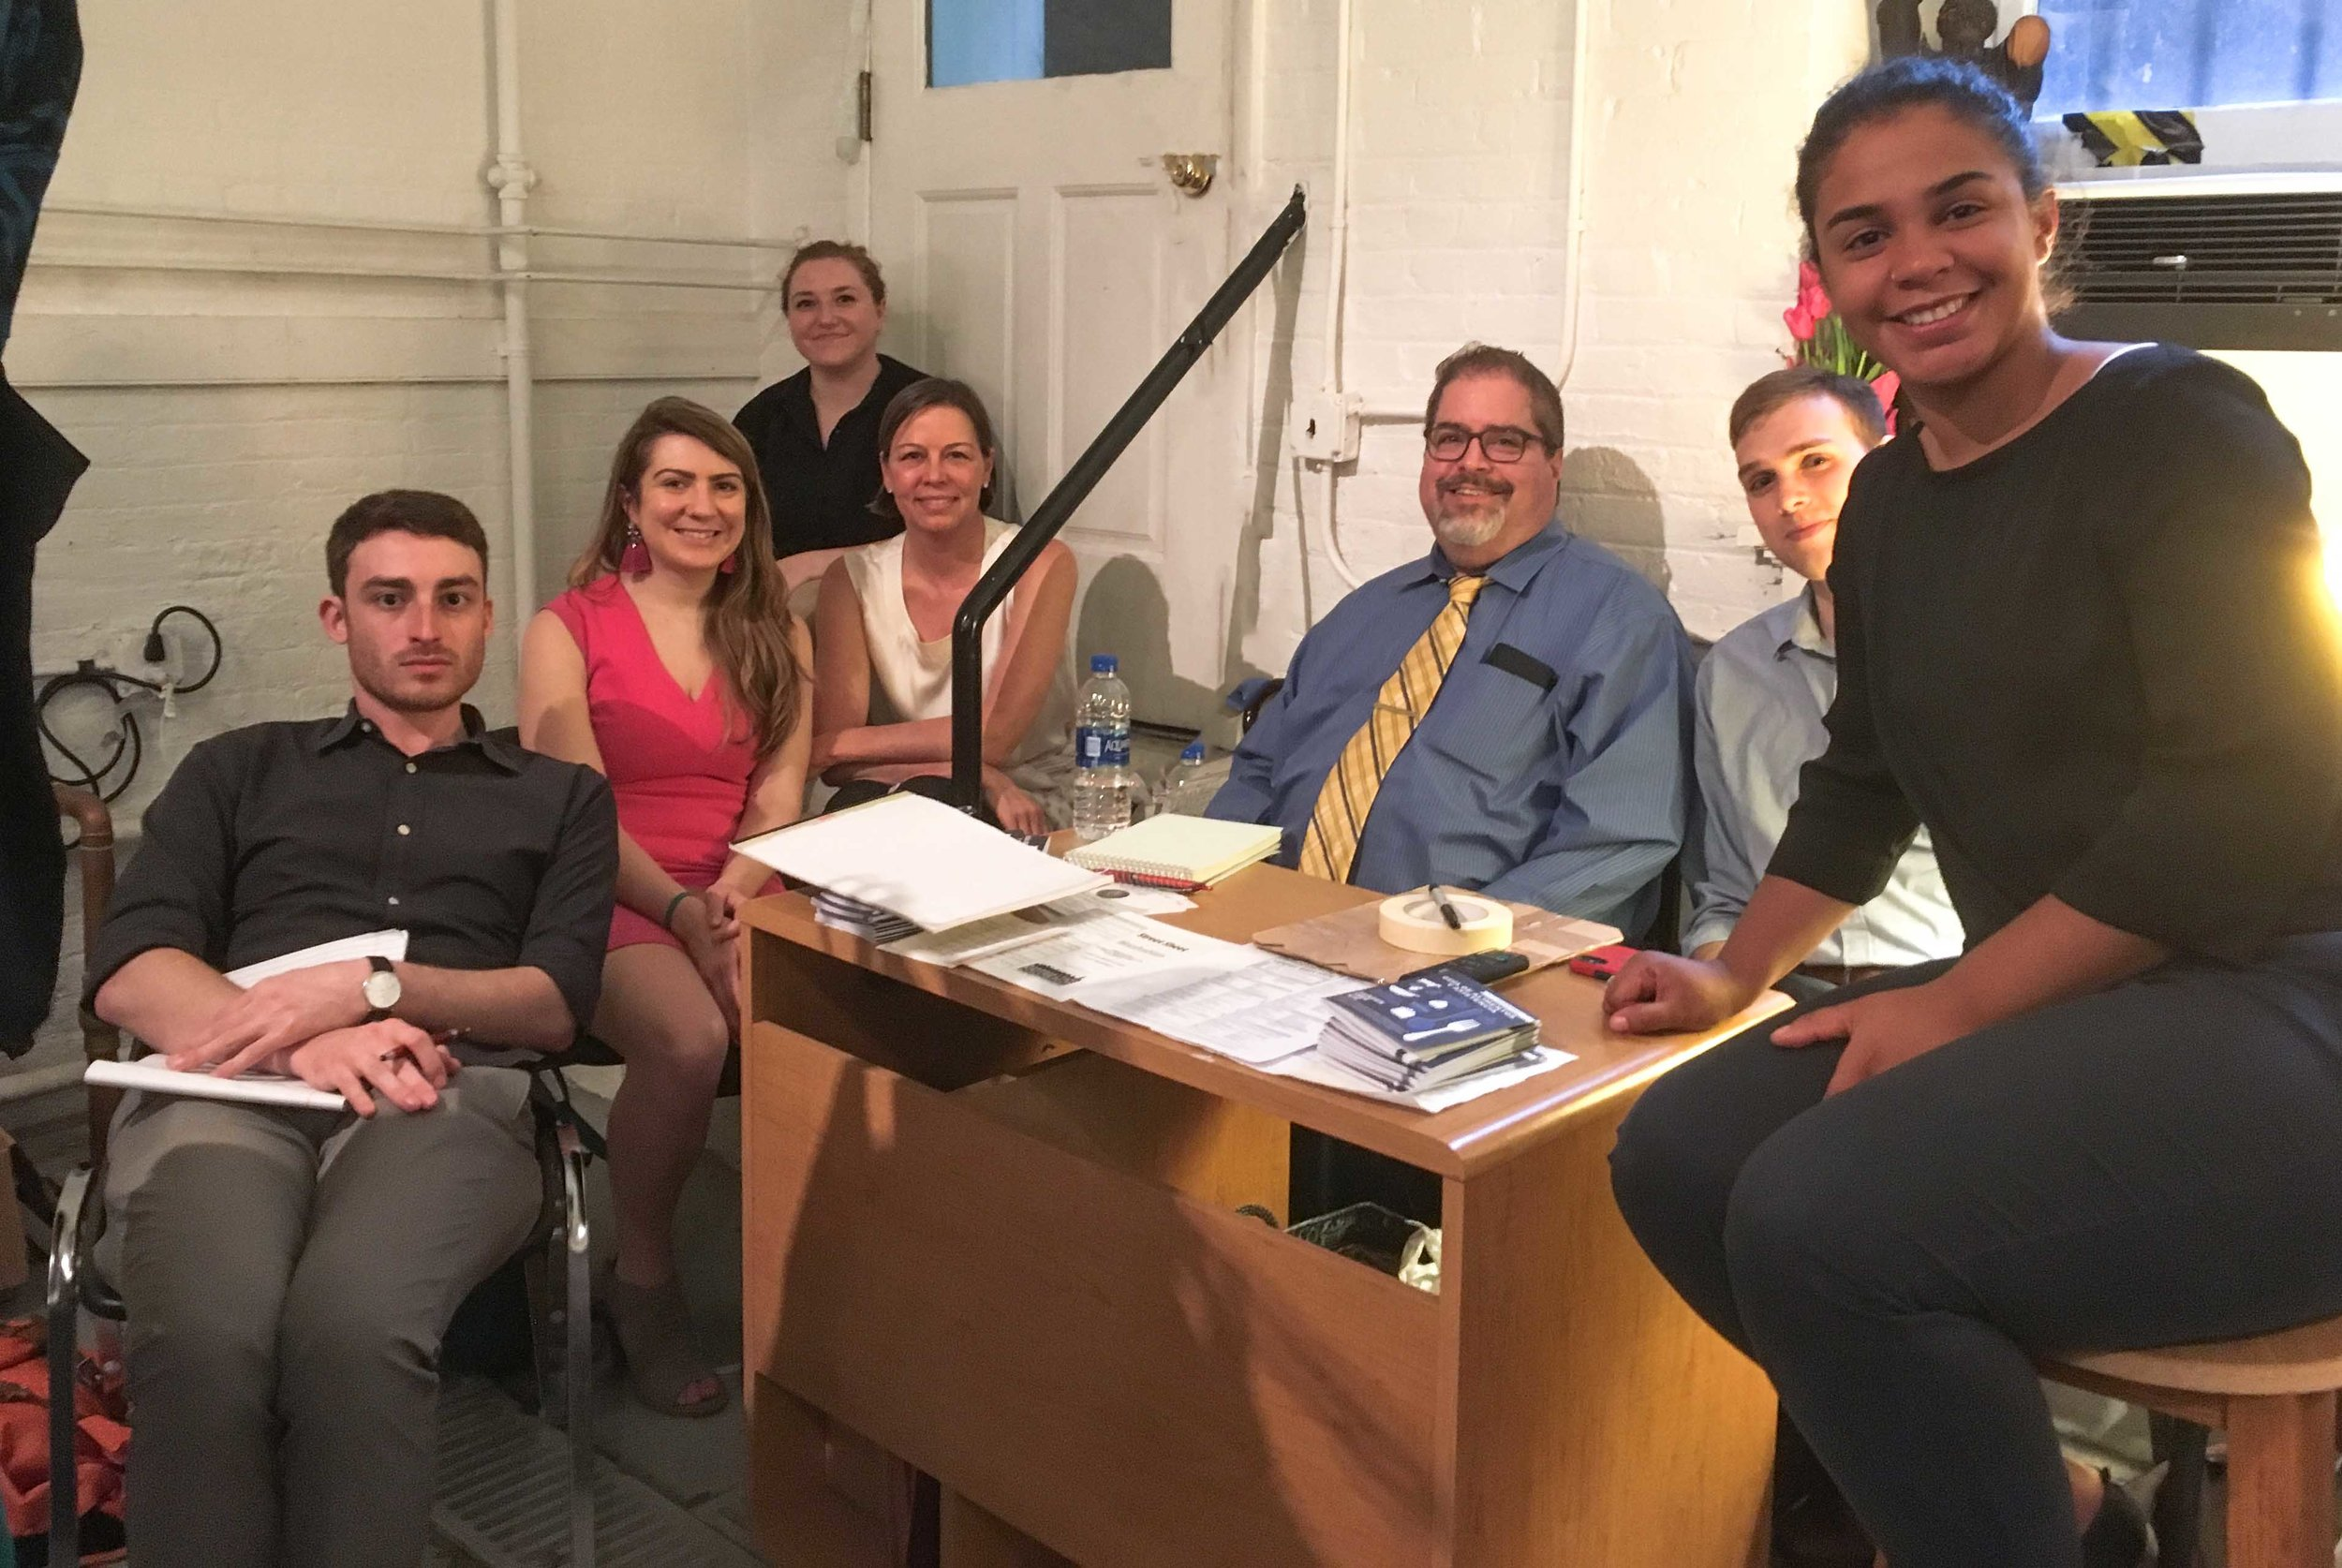 Christopher Portelli (center) with law student volunteers from the New York Legal Assistance Group at the Drop-In Day on Wednesday, June 27, 2018.    Photo by Sr. Monica Clare, C.S.J.B.